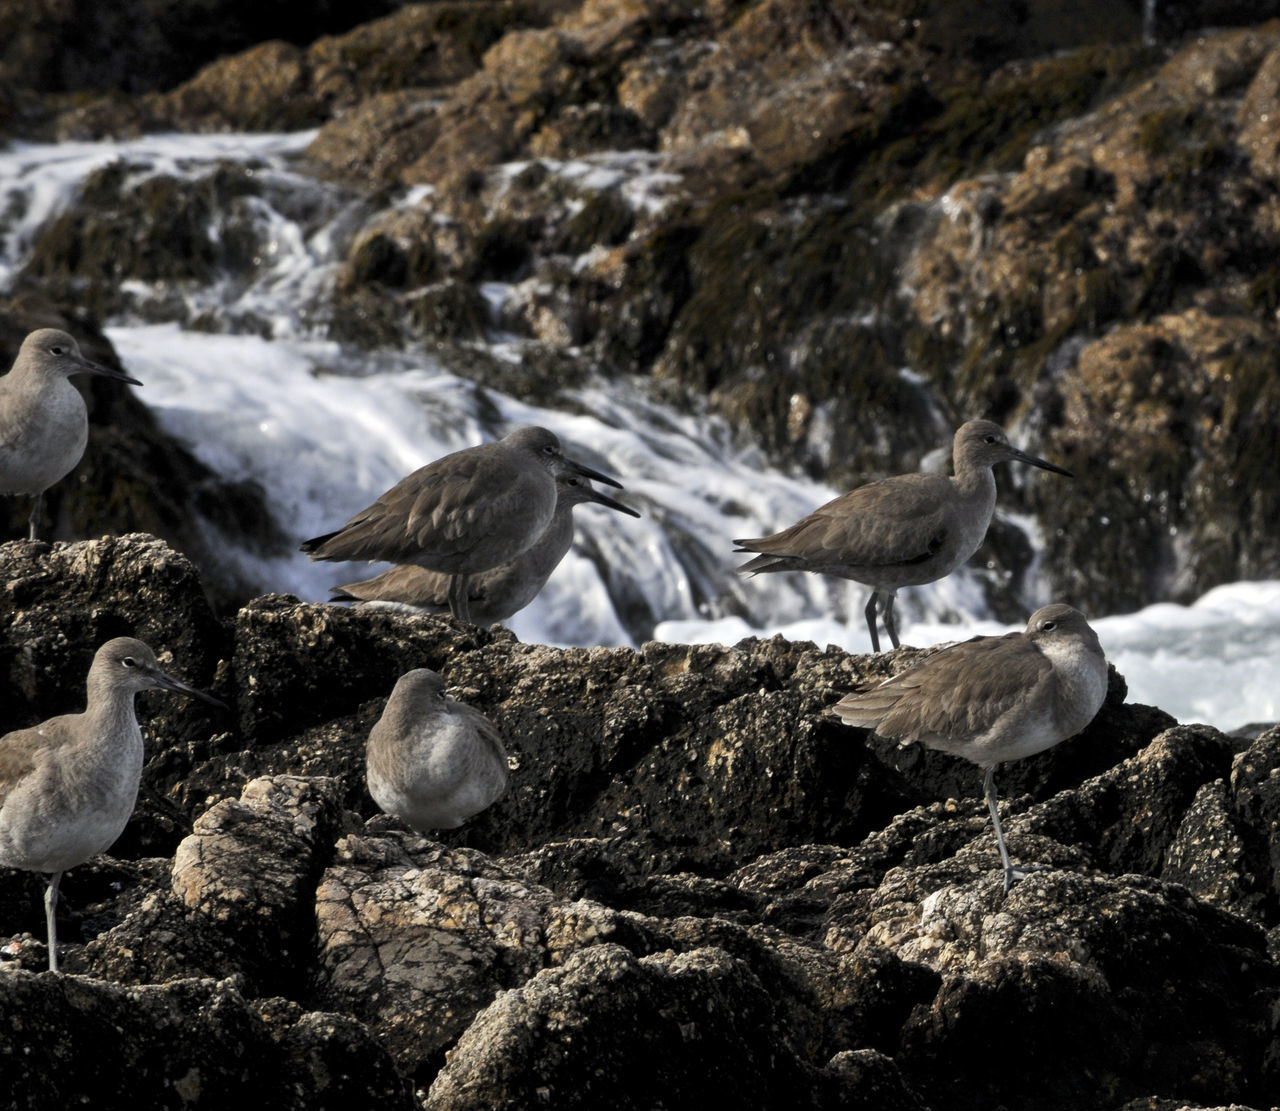 Group of birds on rock with waves crashing nearby Animal Themes Animals In The Wild Beach Bird Bird Photography Birds Day Nature No People Ocean Bird Ocean Birds Outdoors Sea, Beach, Ocean, Water